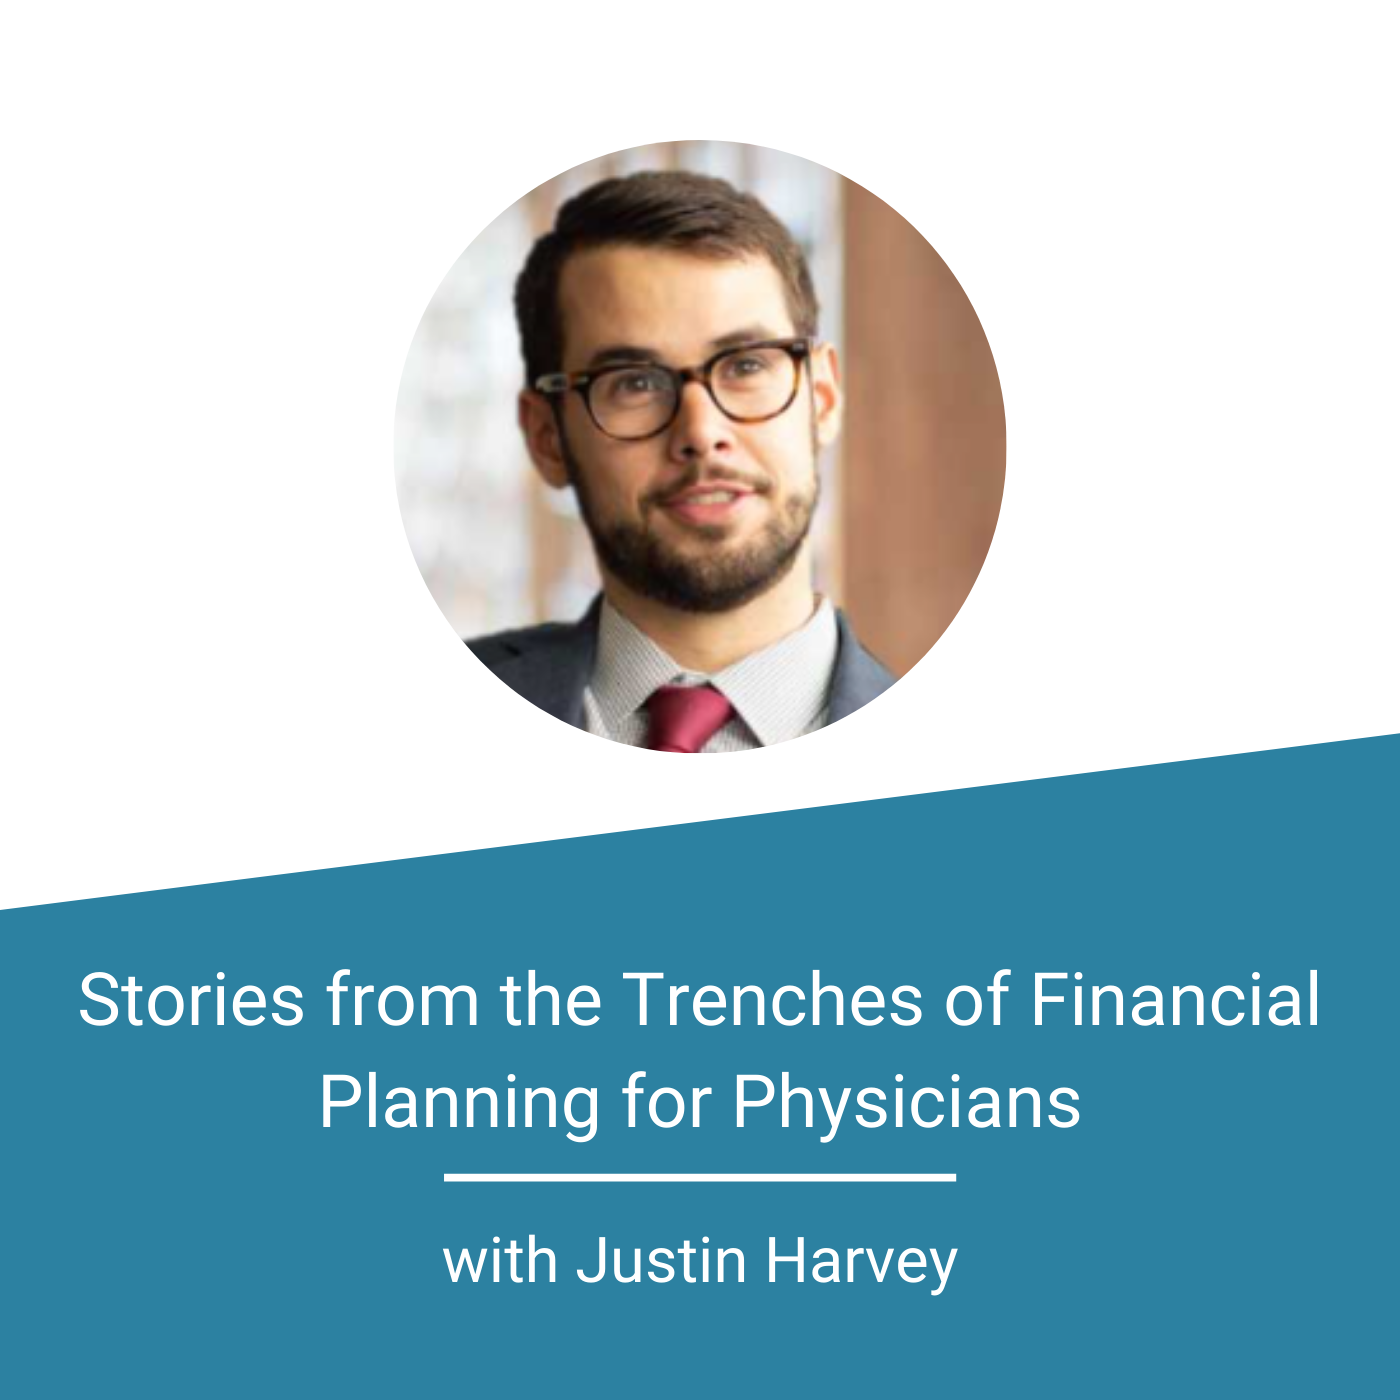 Featured Image - Stories from the Trenches of Financial Planning for Physicians